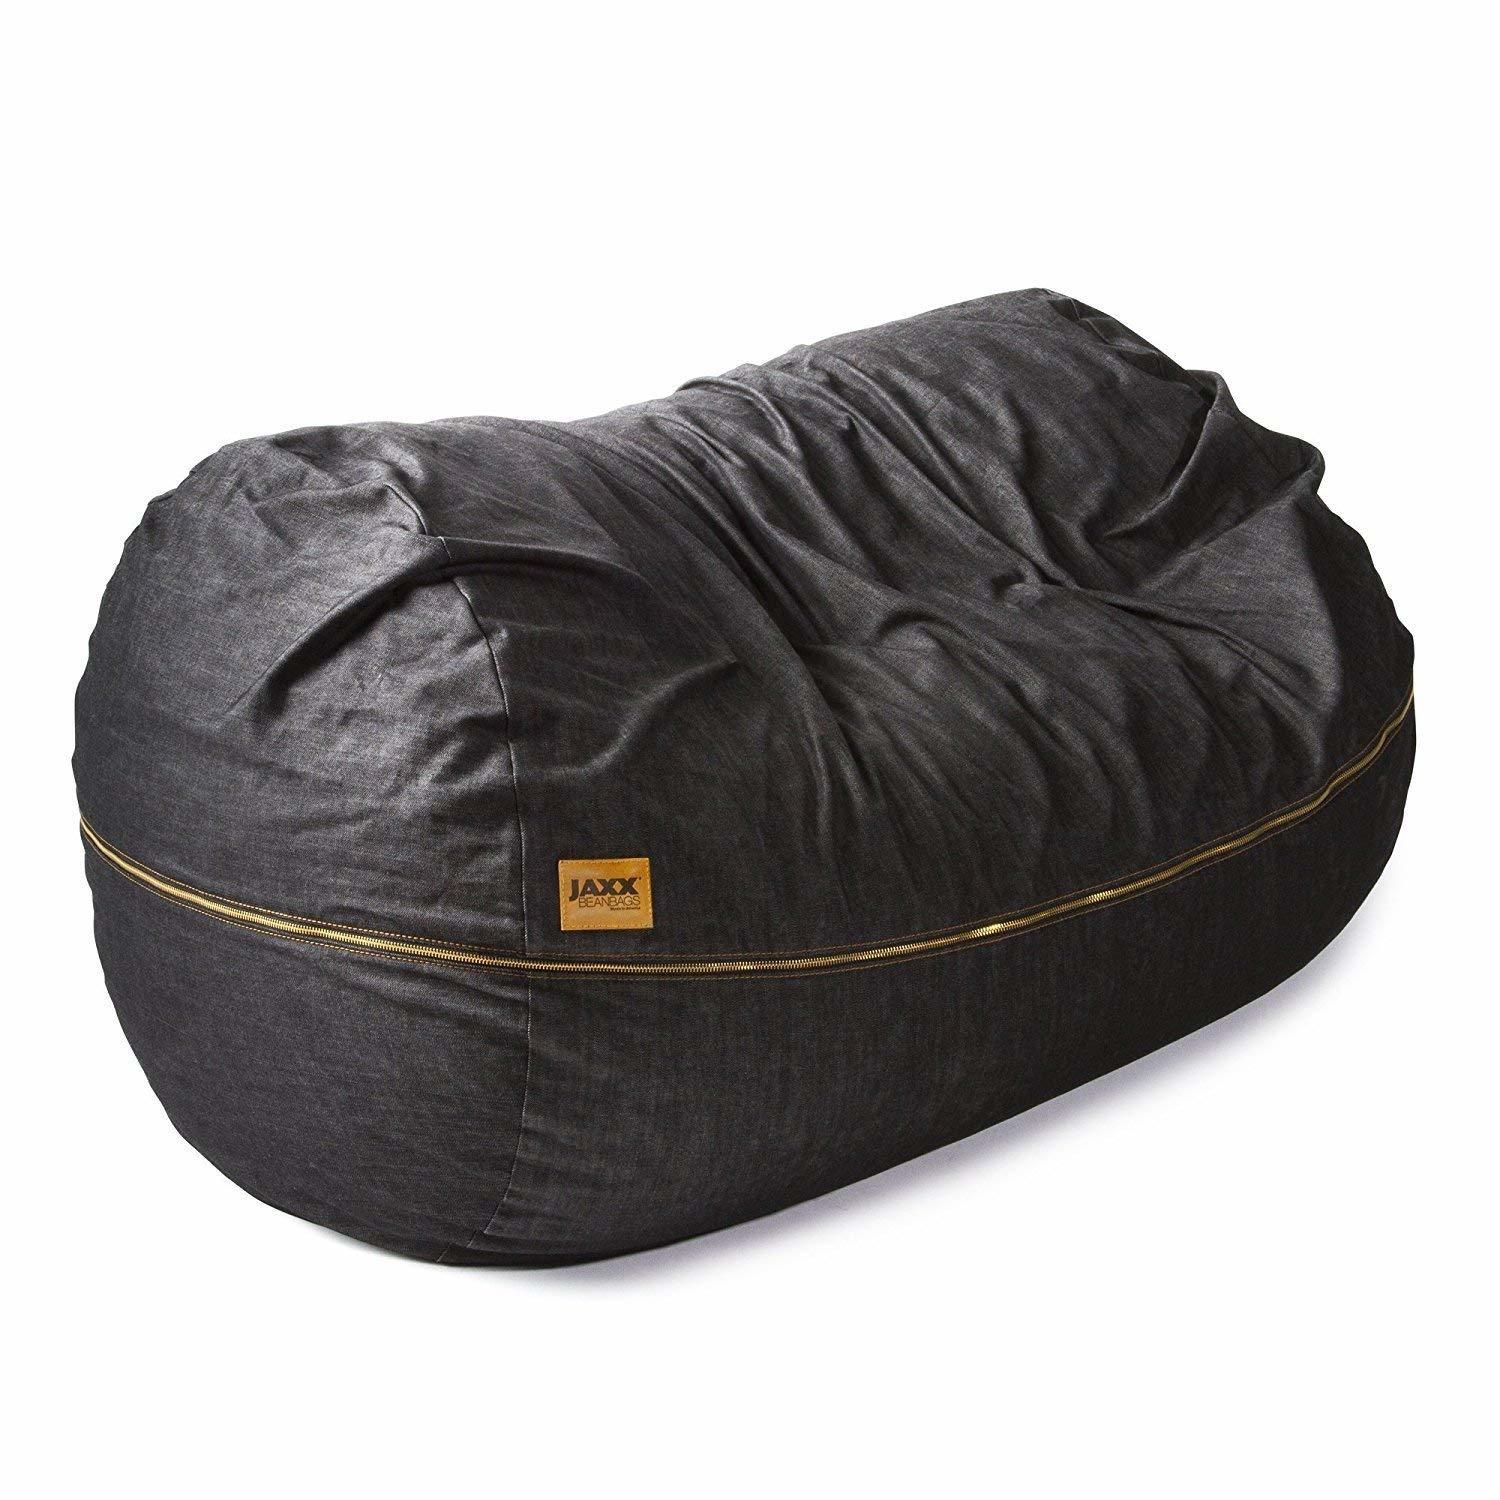 best bean bag chairs brands and reviews cuddly home advisors. Black Bedroom Furniture Sets. Home Design Ideas